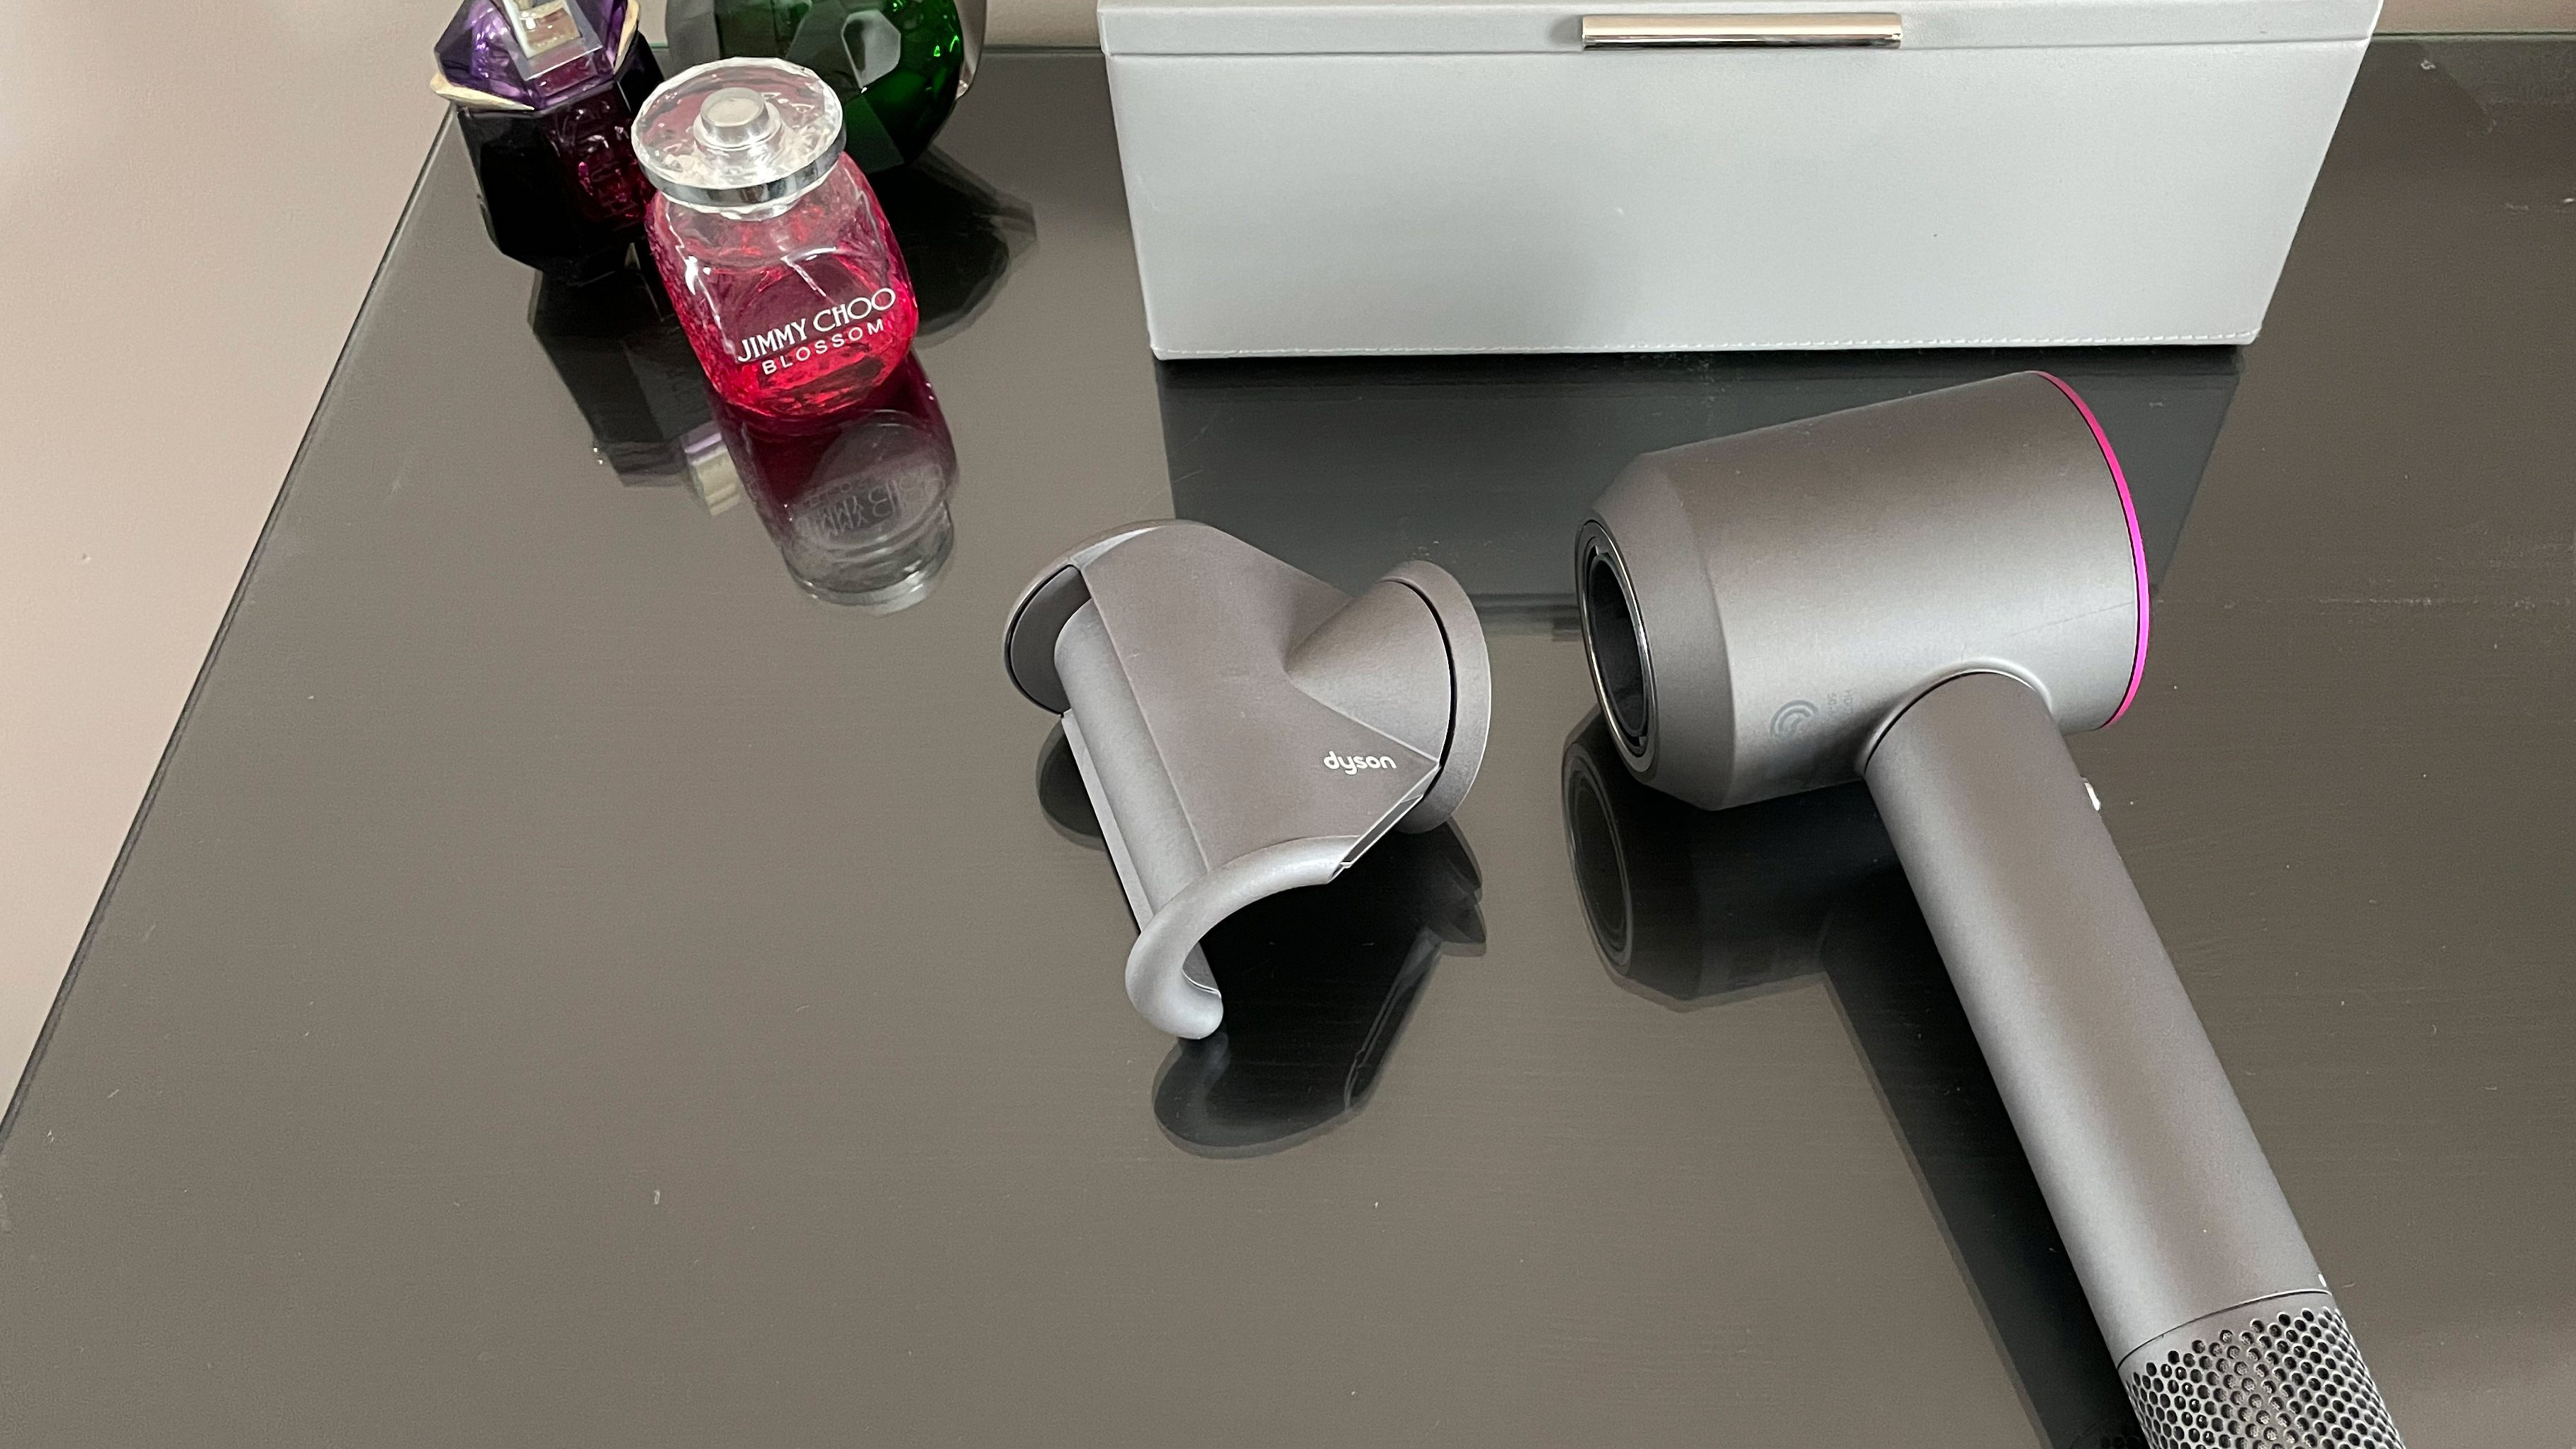 Dyson Supersonic hair dryer with fly away attachment next to it, on a dressing table